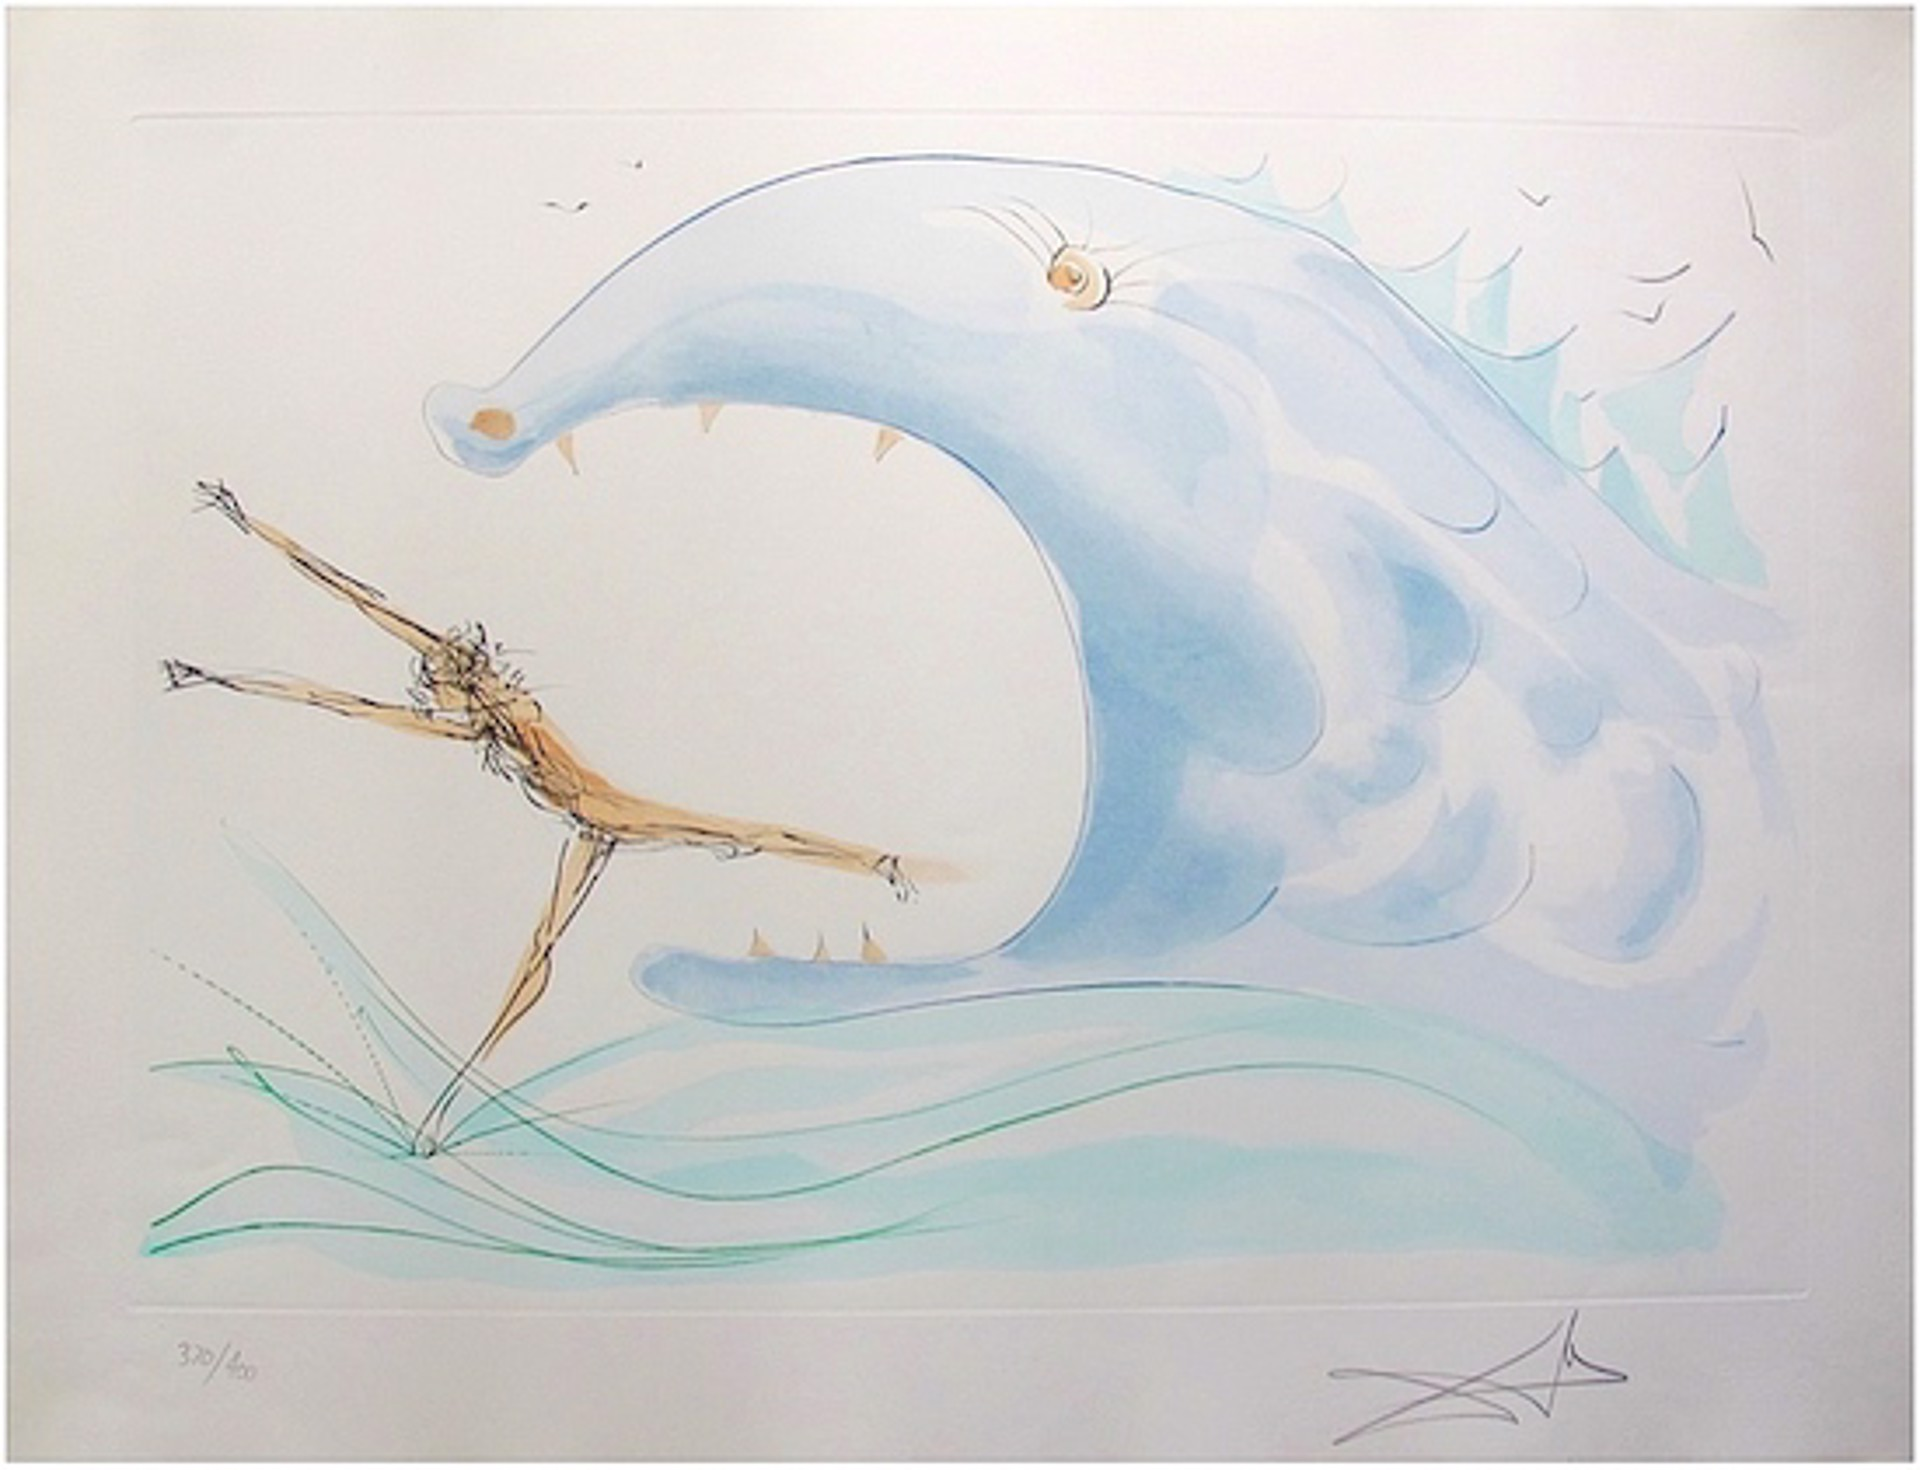 Jonah and the Whale (from Our Historical Heritage, suite of 11) by Salvador Dali